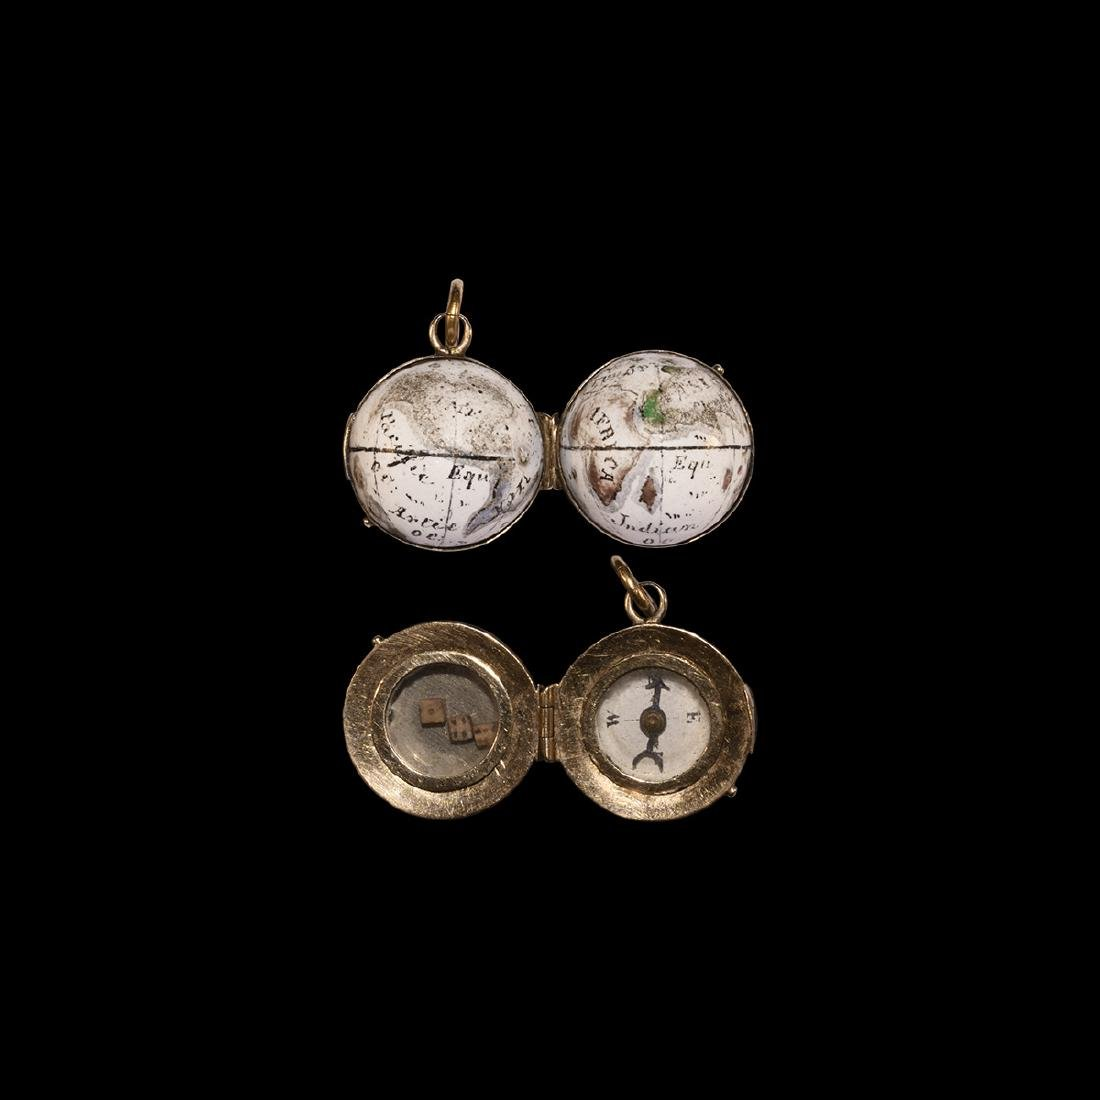 Post Medieval Gold Orb Pendant with Compass and Dice